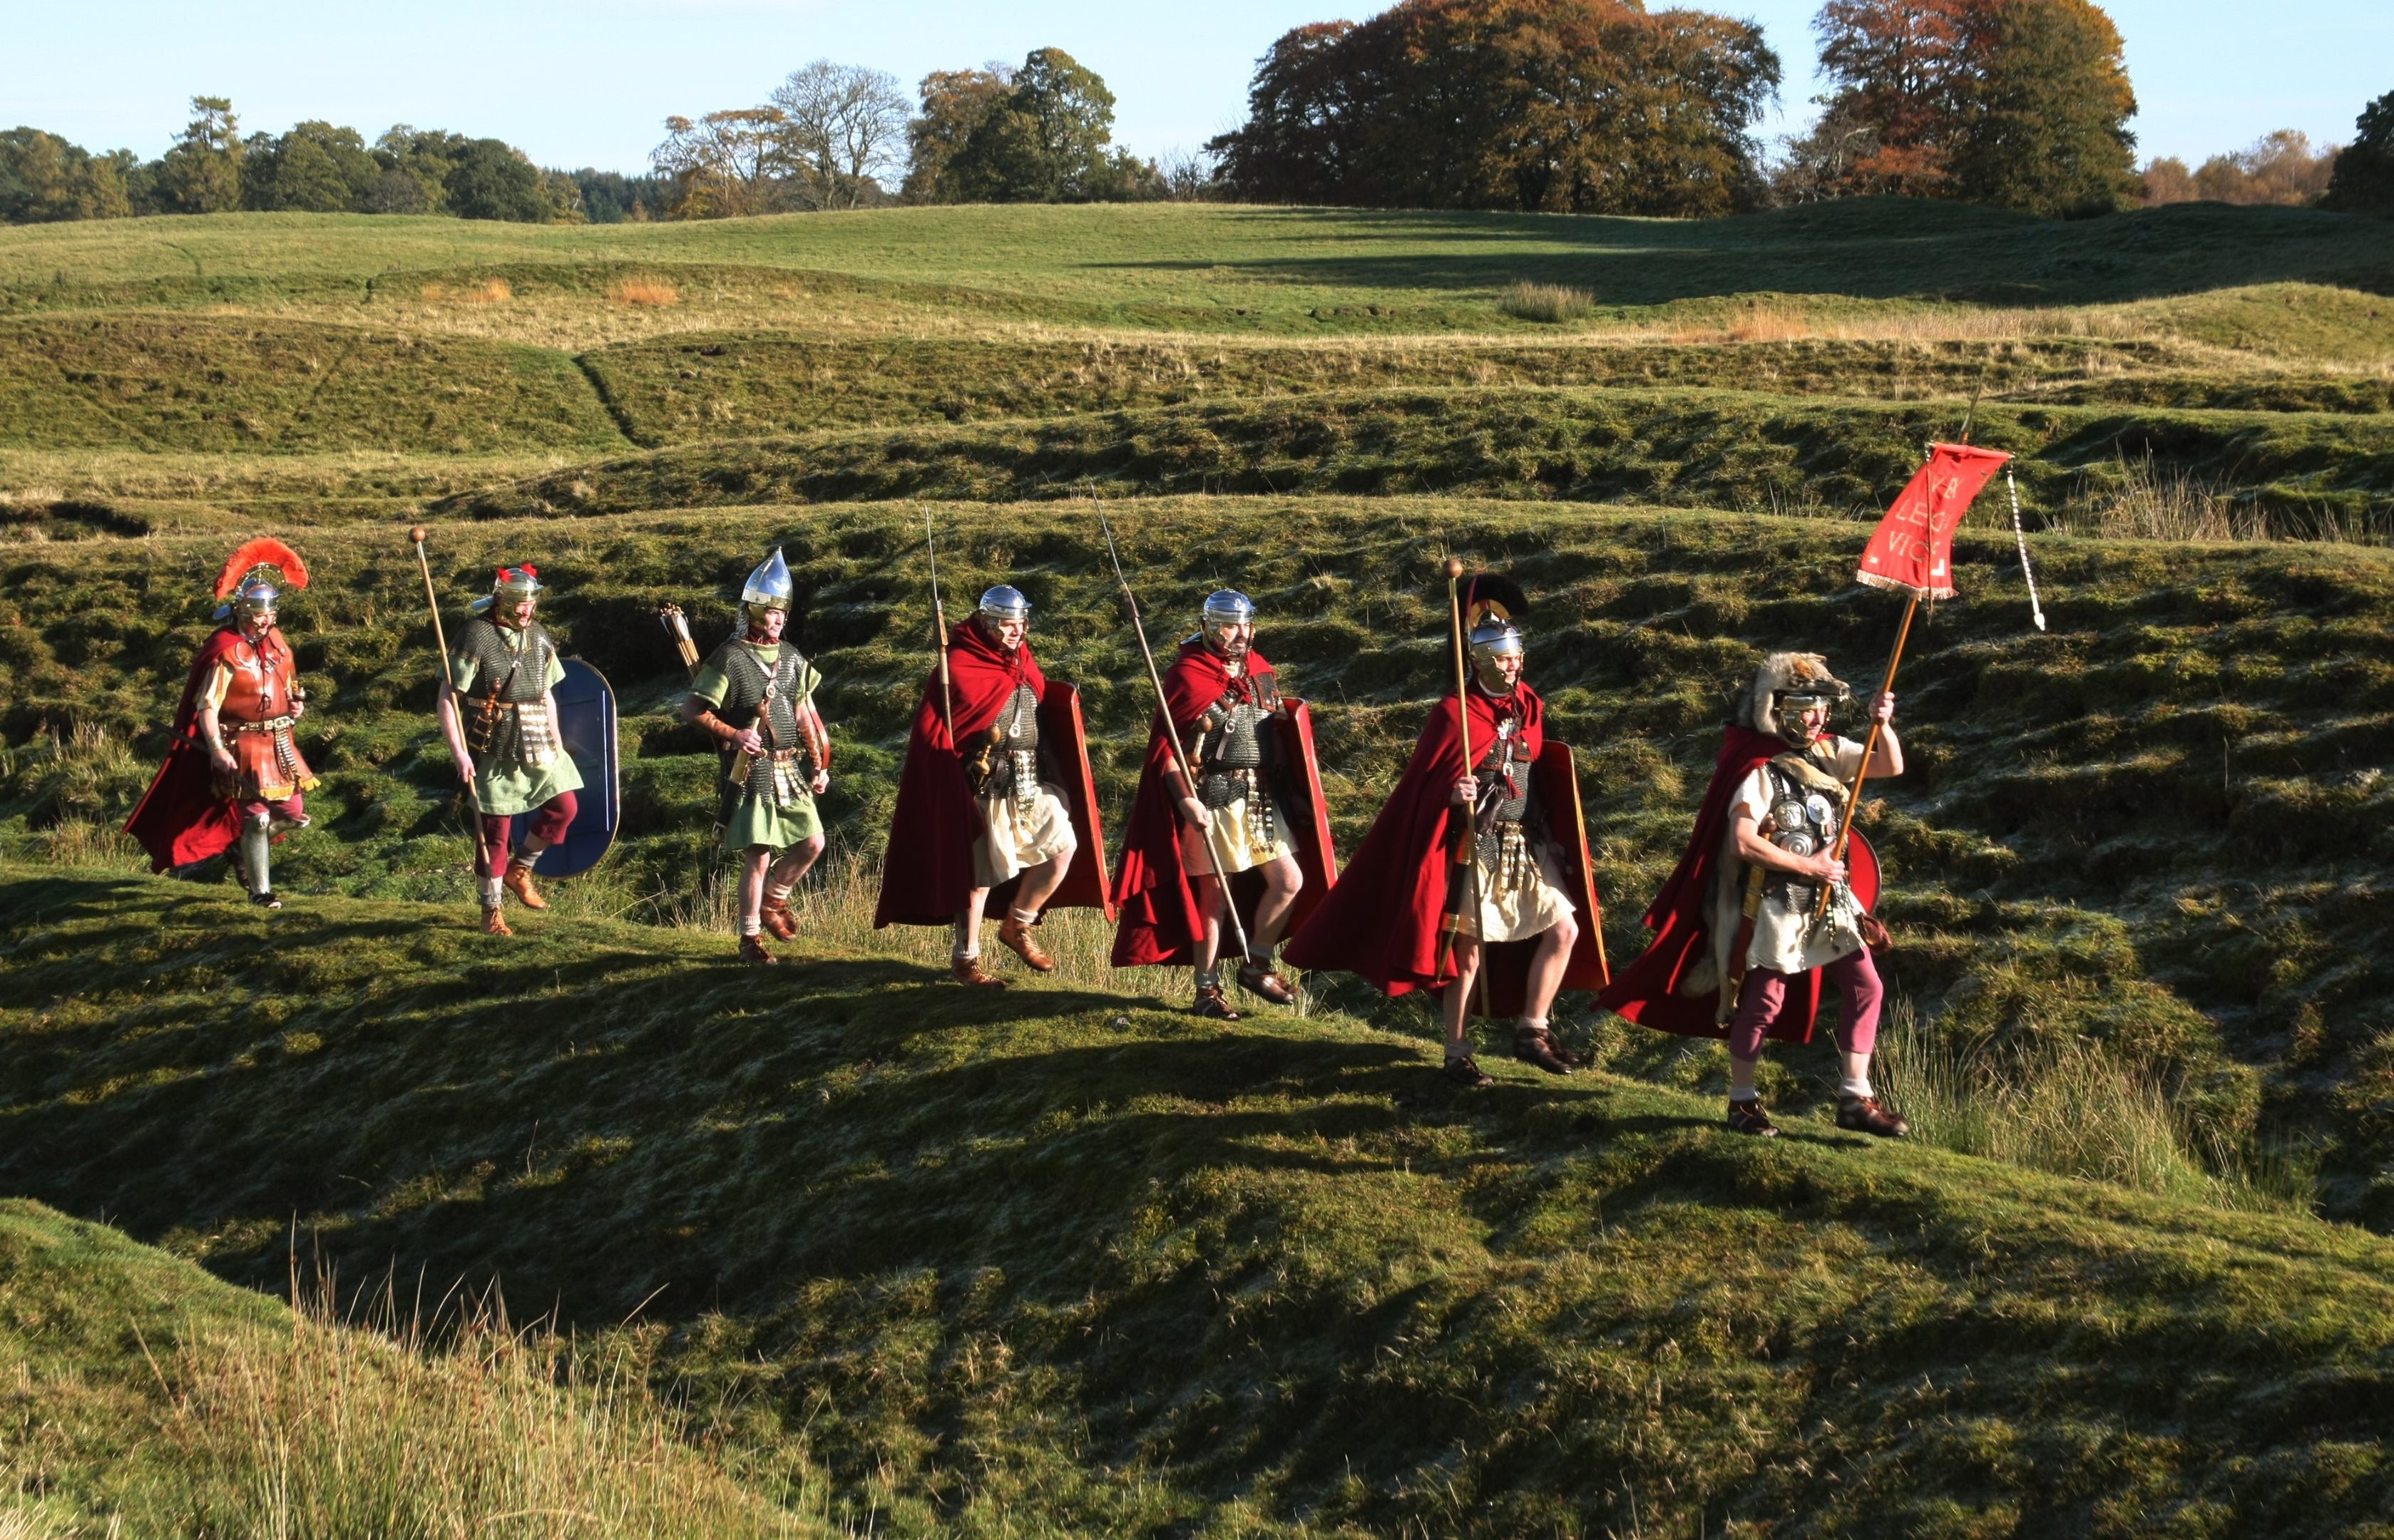 Members of the Antonine Guard who celebrate Scotland's Roman past at Ardoch fort, Braco.